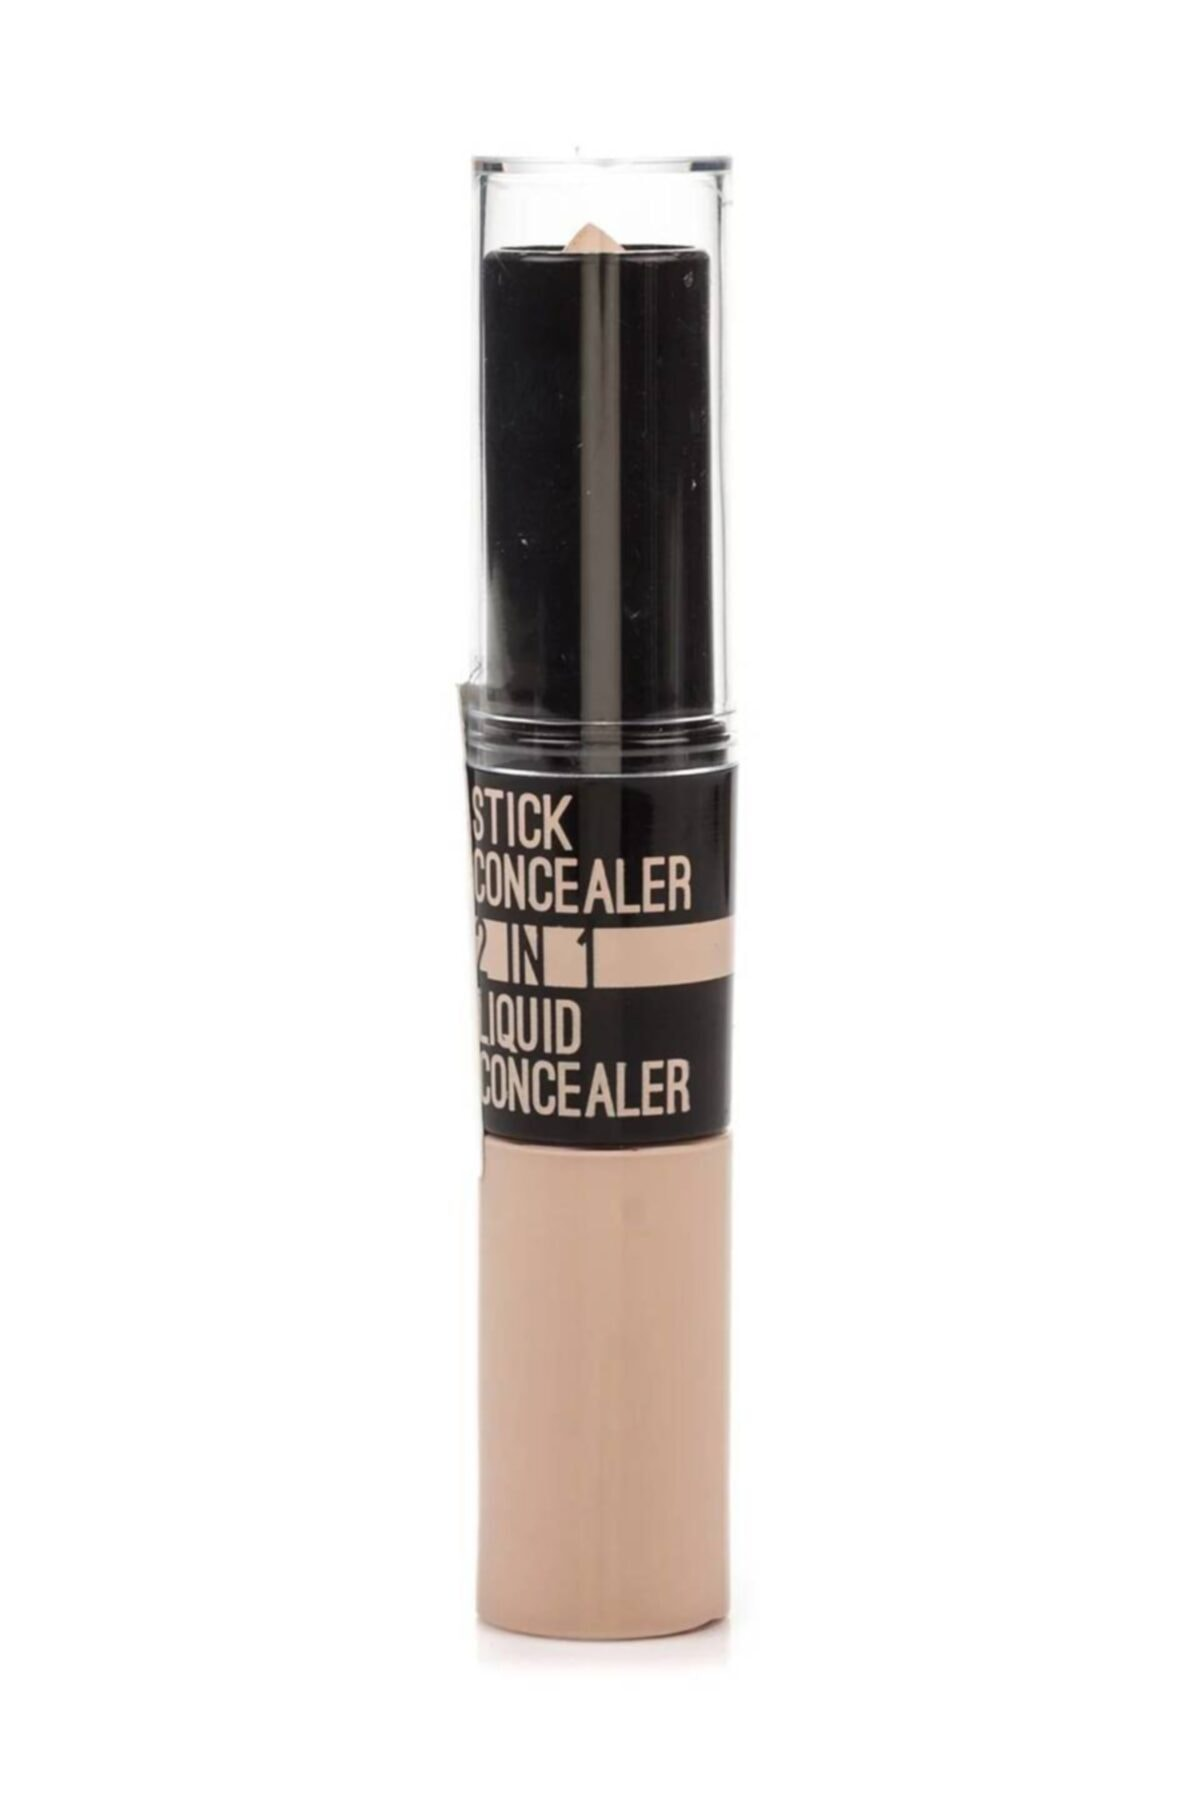 Ruby Rose Stick Concealer 2 In 1 Liquid Conceal 01 2